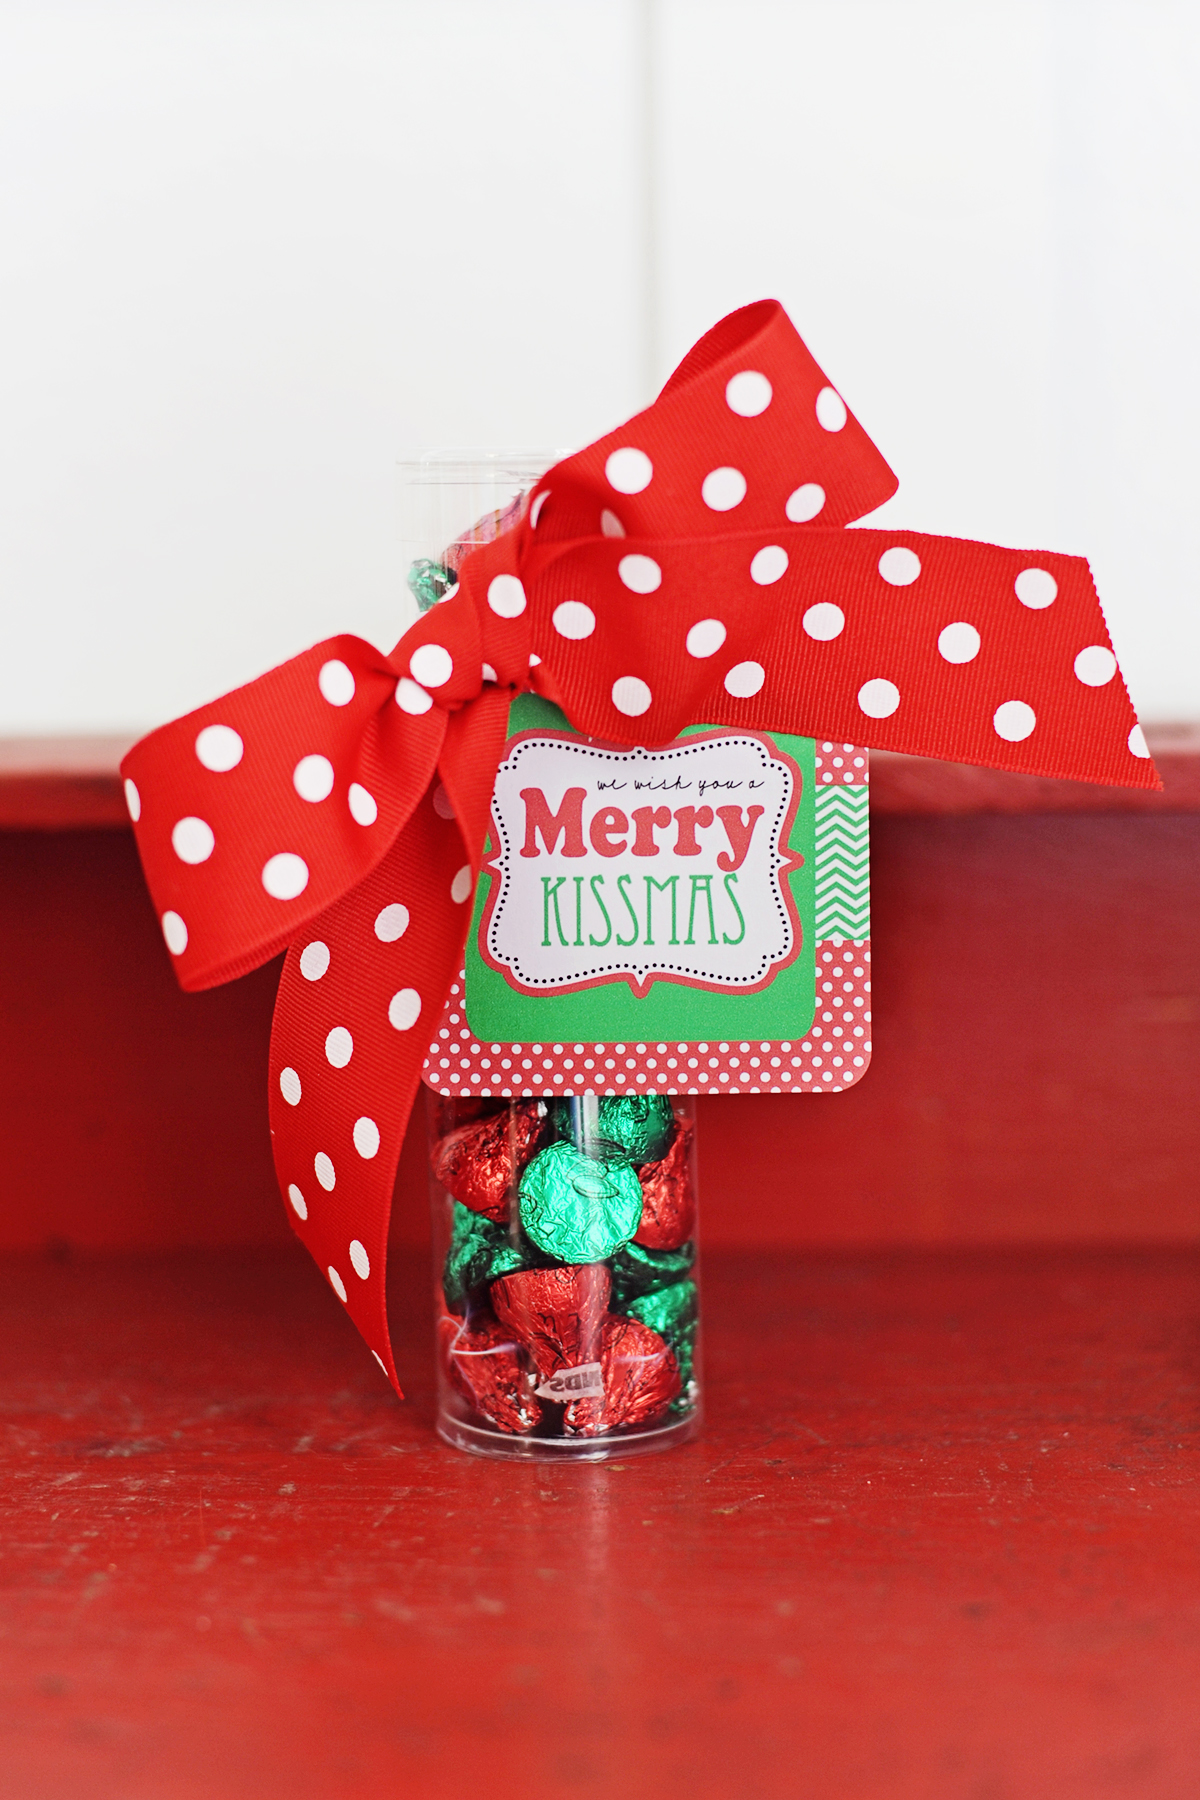 Merry kissmas free printable tags